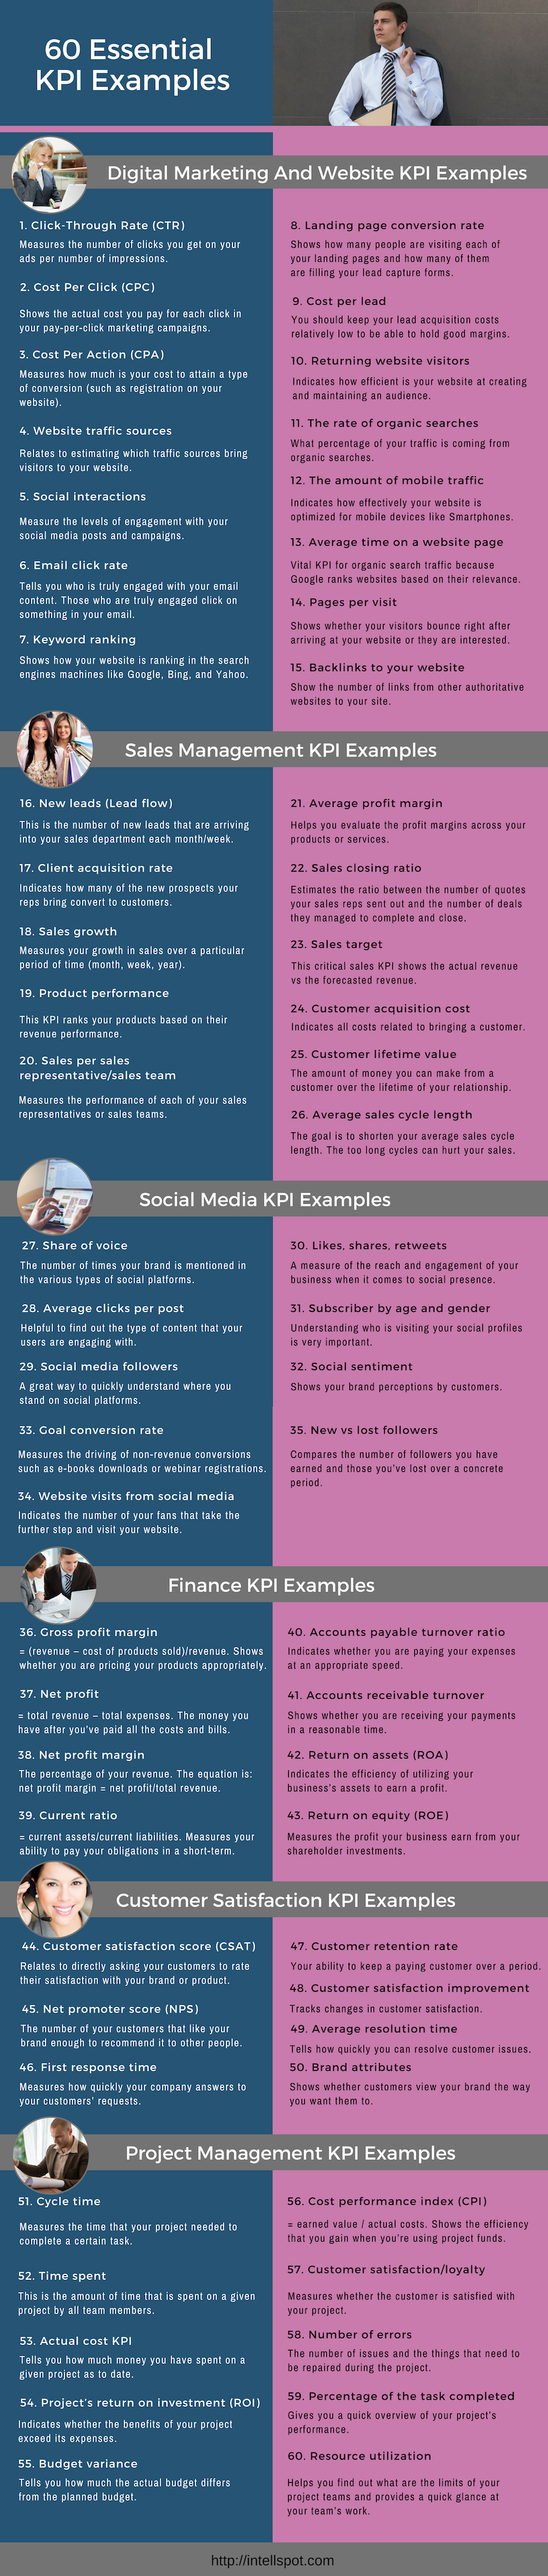 KPI examples - infographic